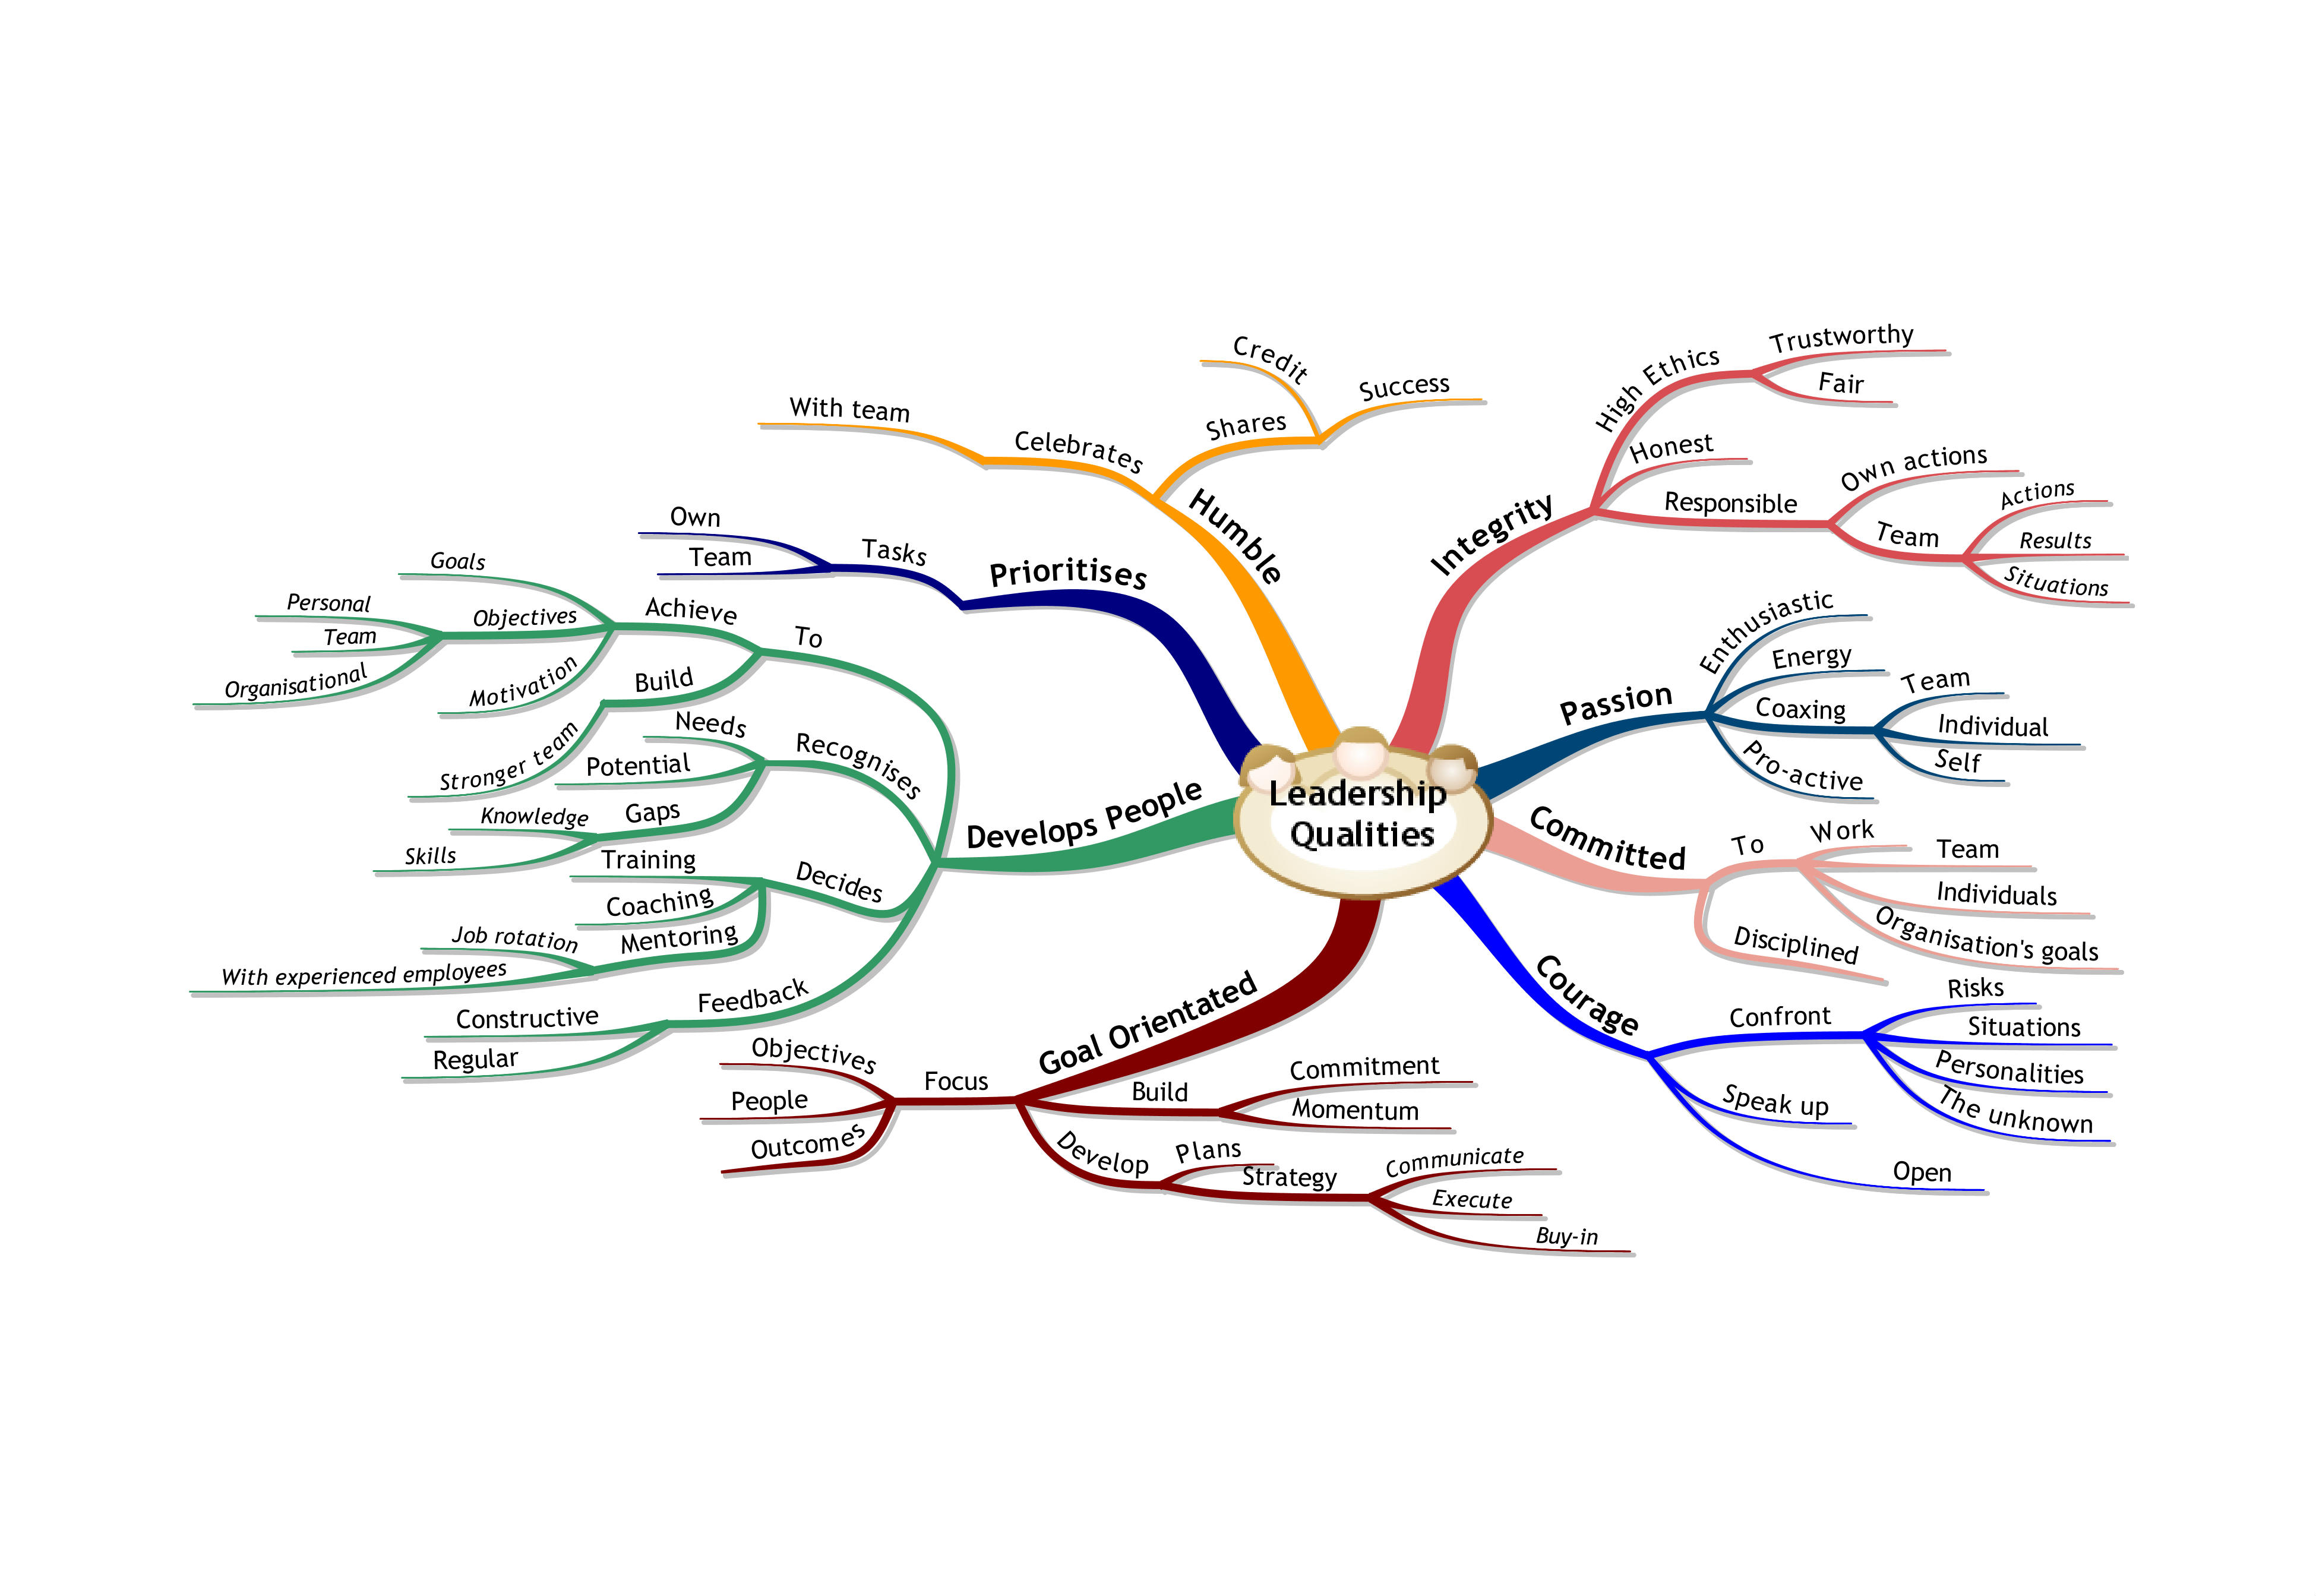 leadership qualities mind map illumine training leadership qualities mind map